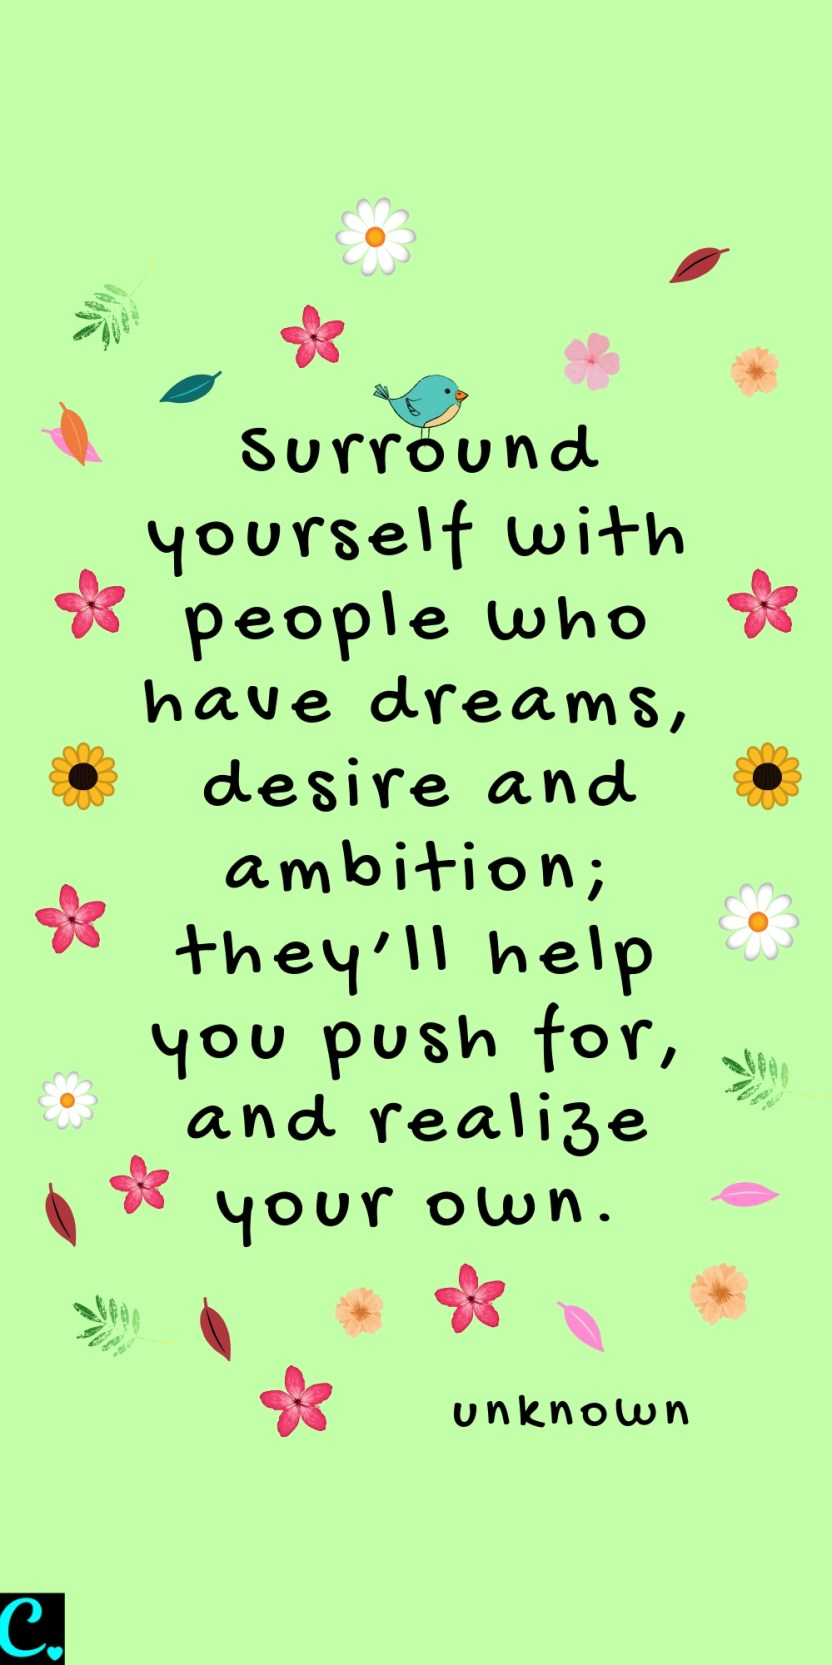 Surround yourself with people who have dreams, desire and ambition; they'll help you push for, and realize your own. | success quote | Motivational quotes | Wise Quotes | Quotes for entrepreneurs | Personal development quotes